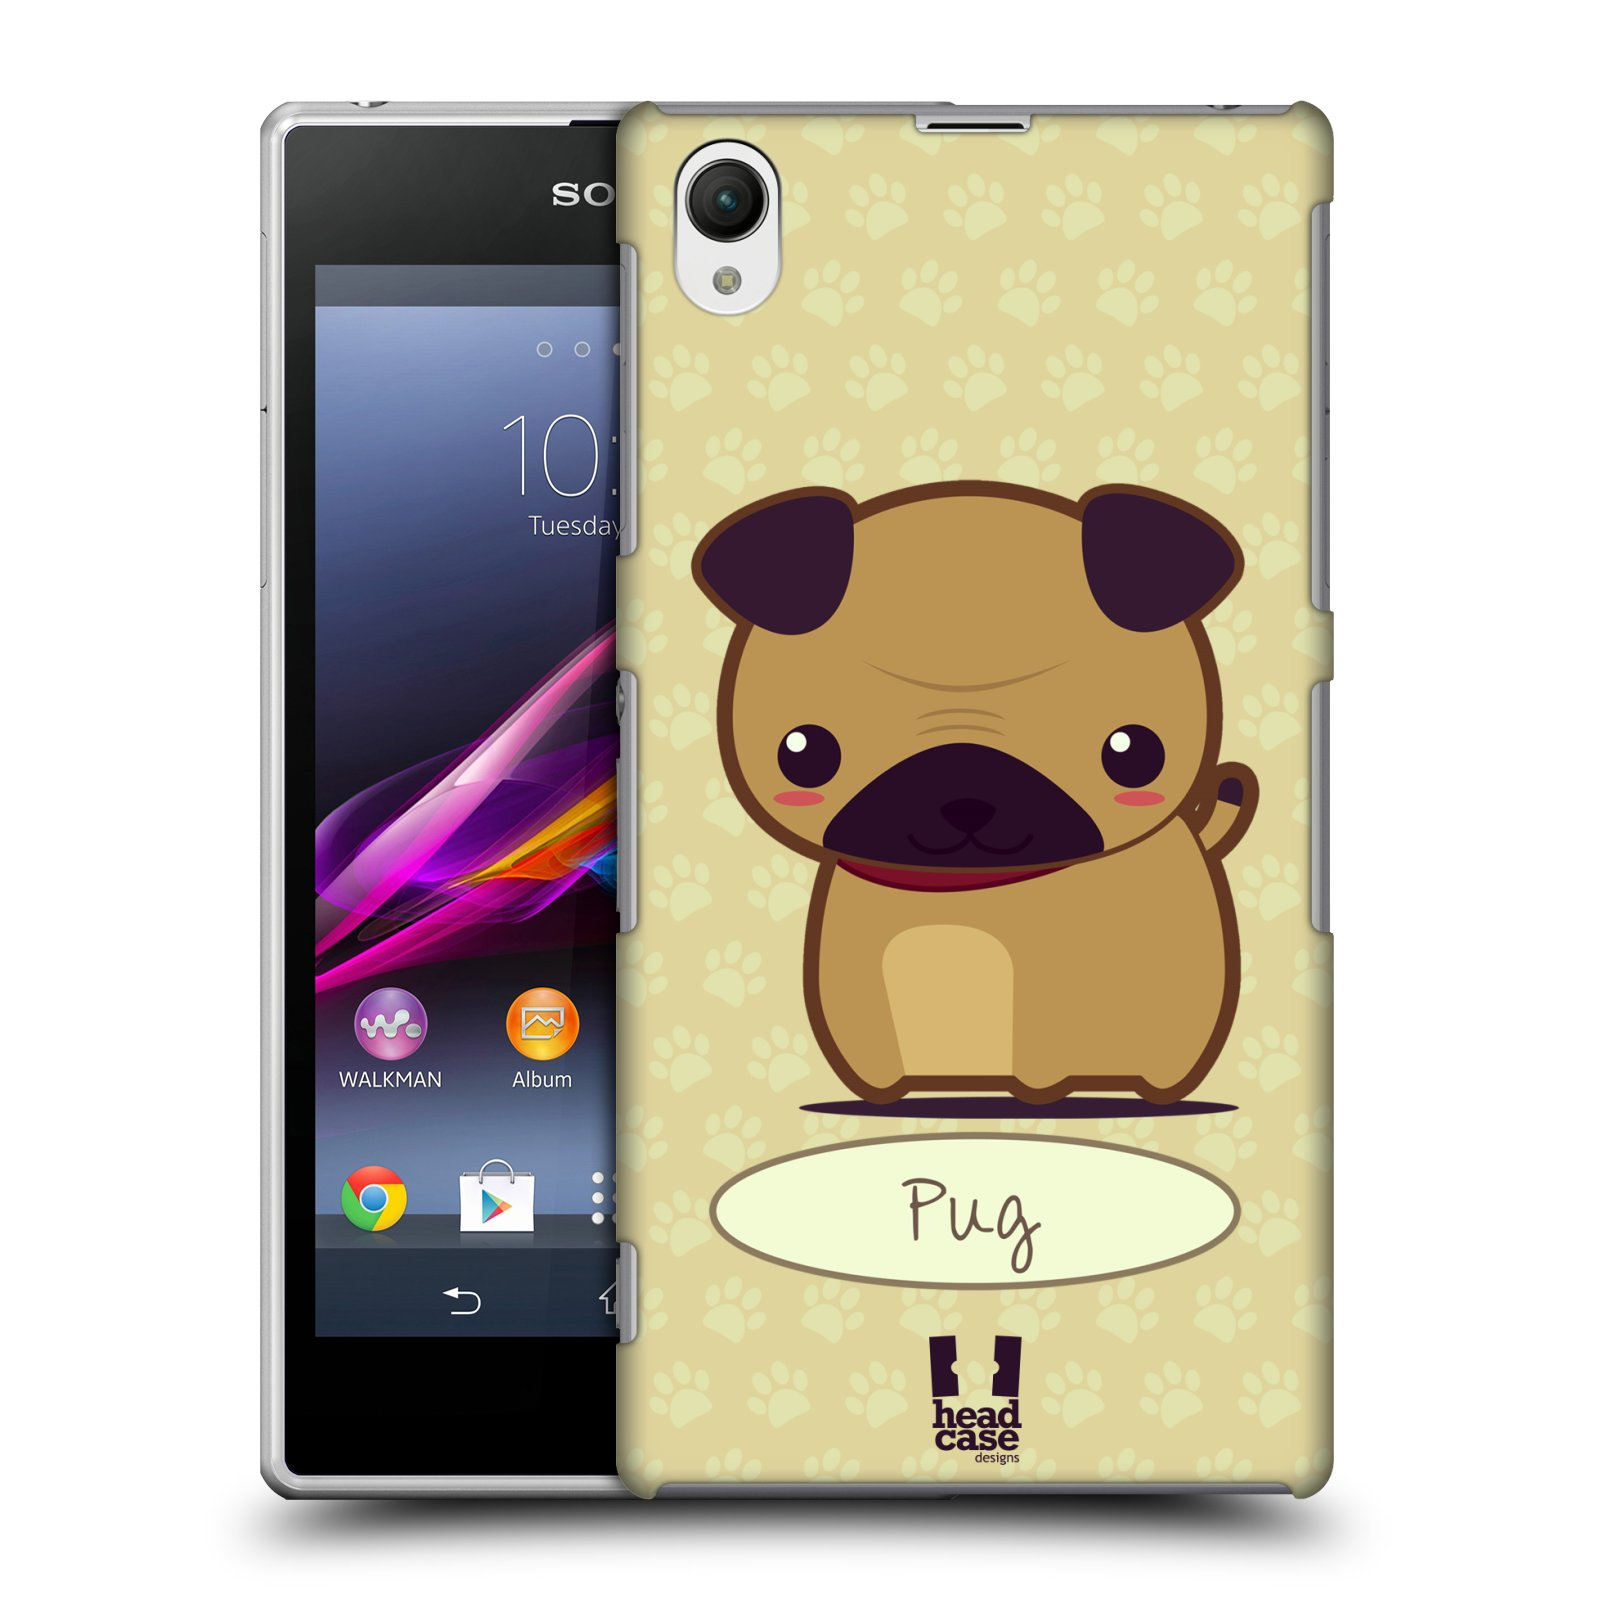 HEAD CASE DESIGNS WONDER DOGS CASE FOR SONY XPERIA Z1 C6902